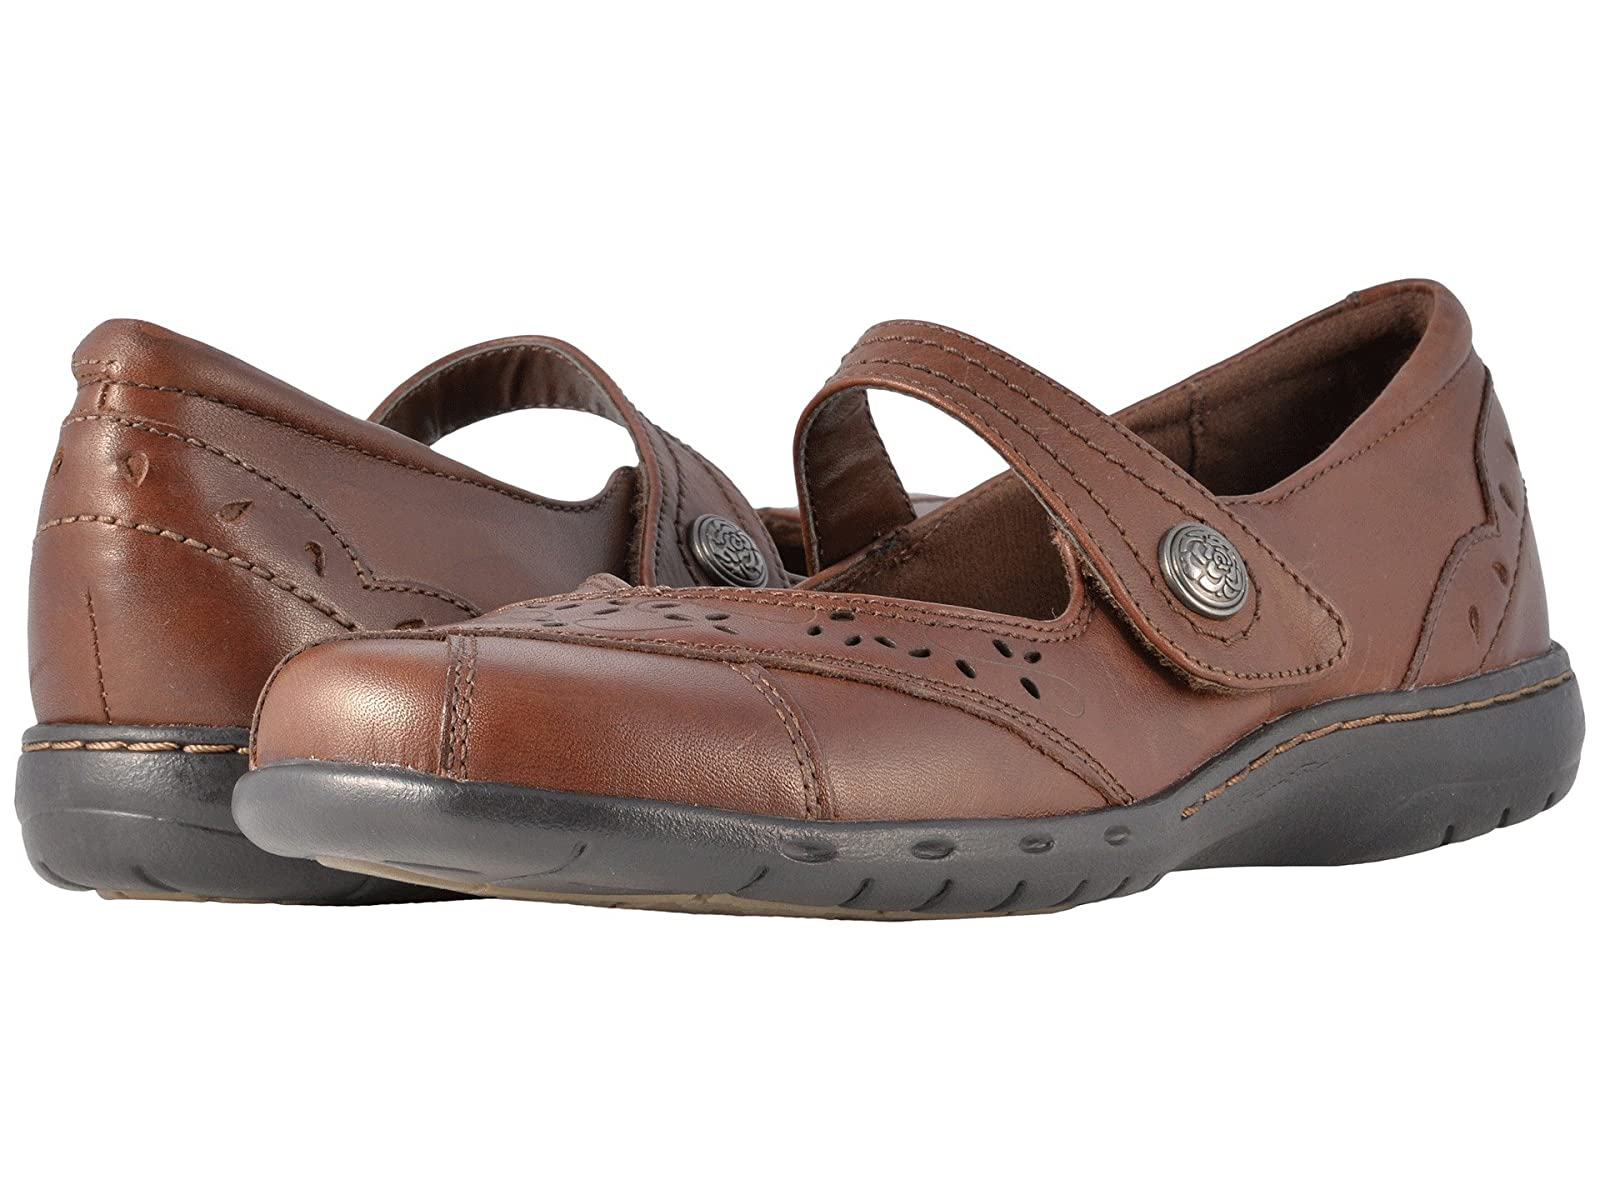 Rockport Cobb Hill Collection Cobb Hill PetraAtmospheric grades have affordable shoes